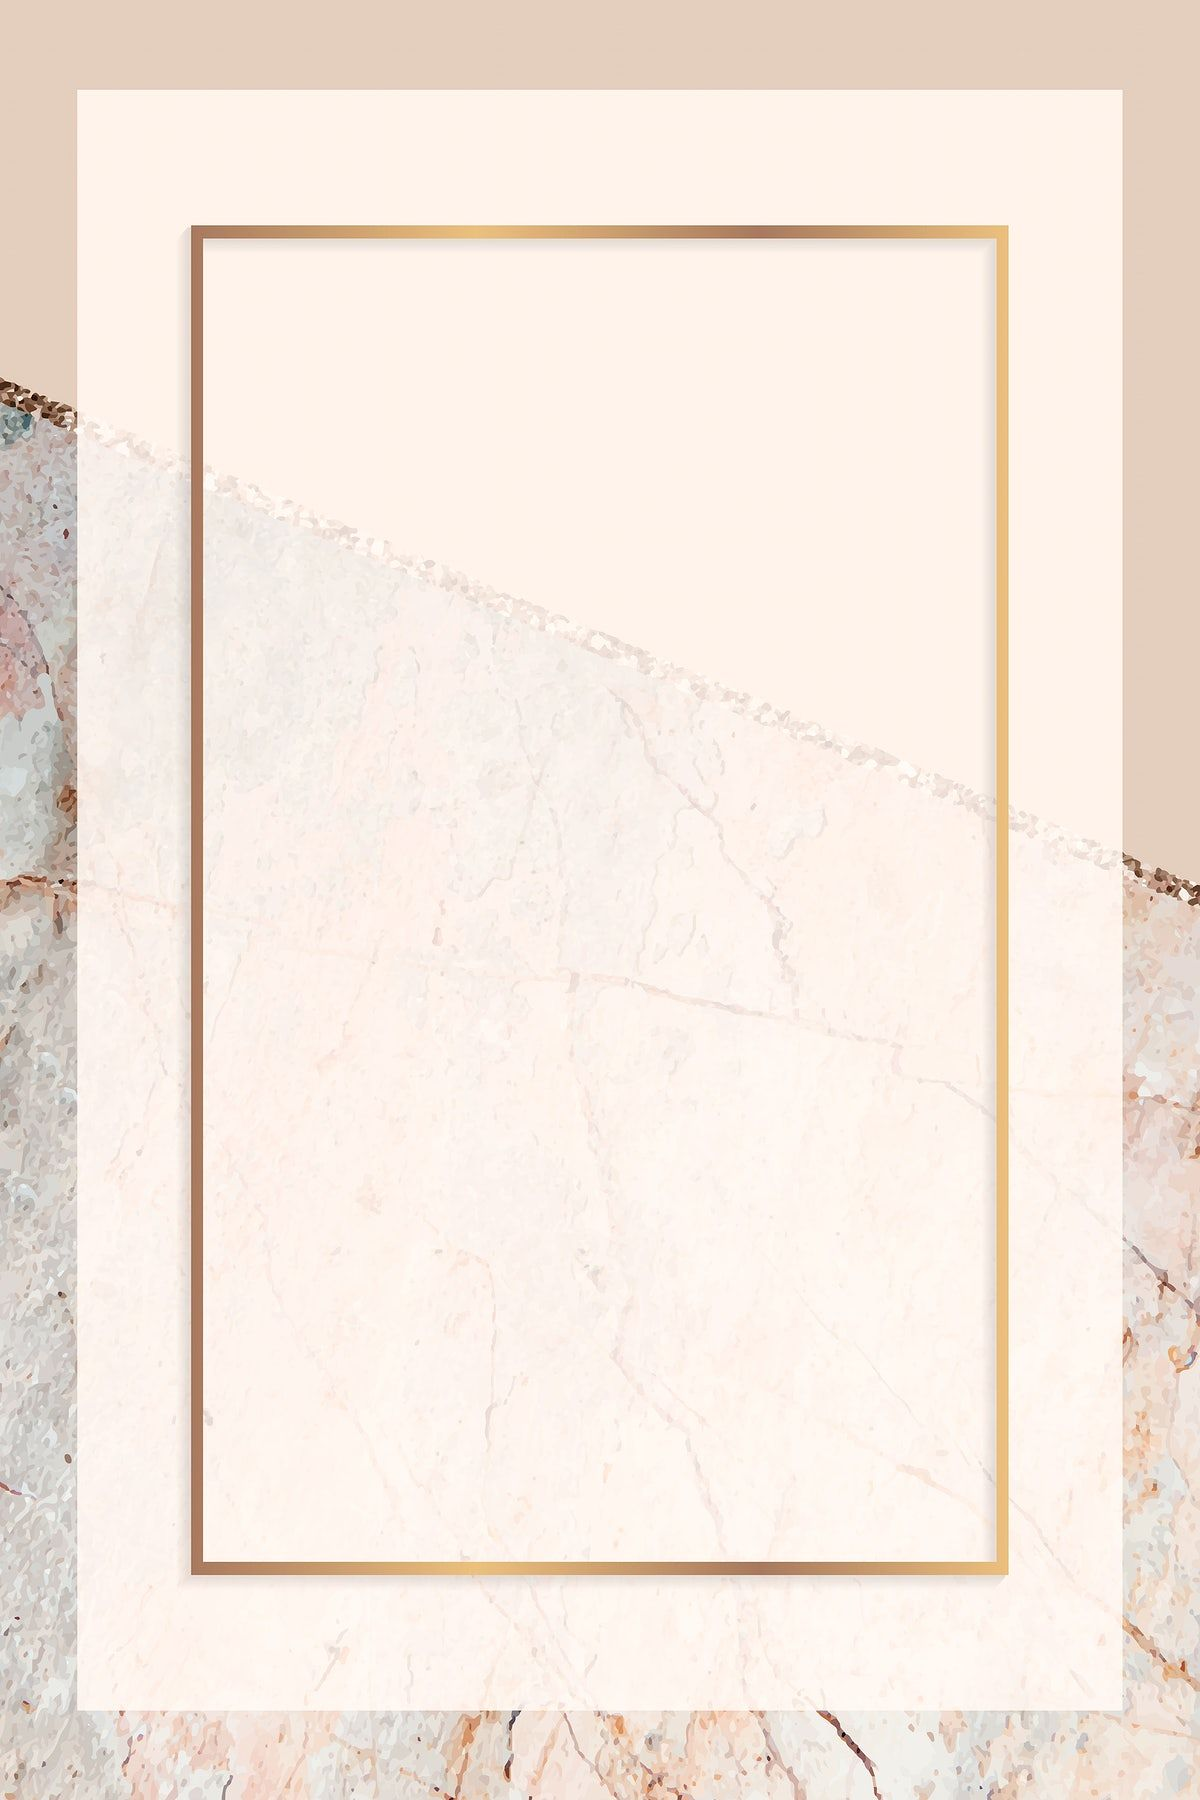 Download premium vector of Rectangle frame on pastel orange marbled background vector by marinemynt about gold marble, wallpaper marble, frame, marble background design, and beige background 1222921